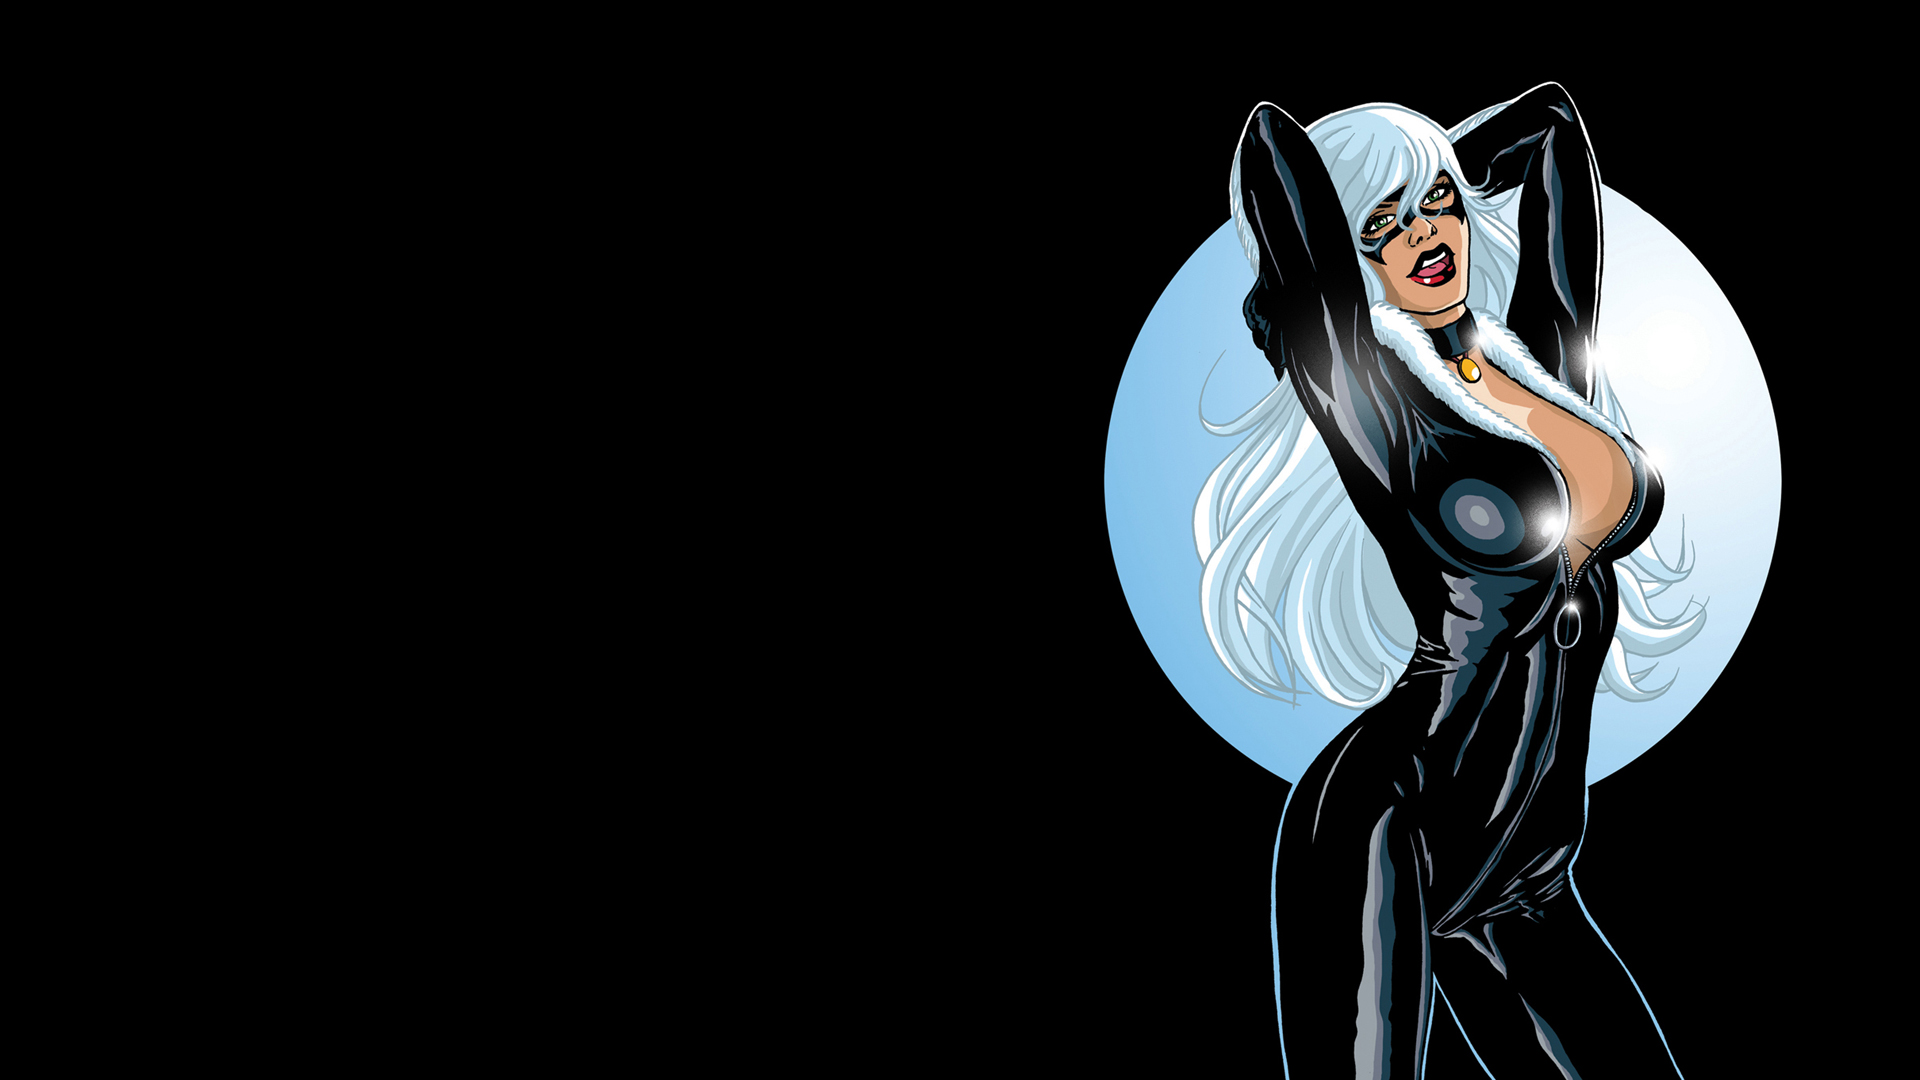 Black Cat Wallpapers, Pictures, Images